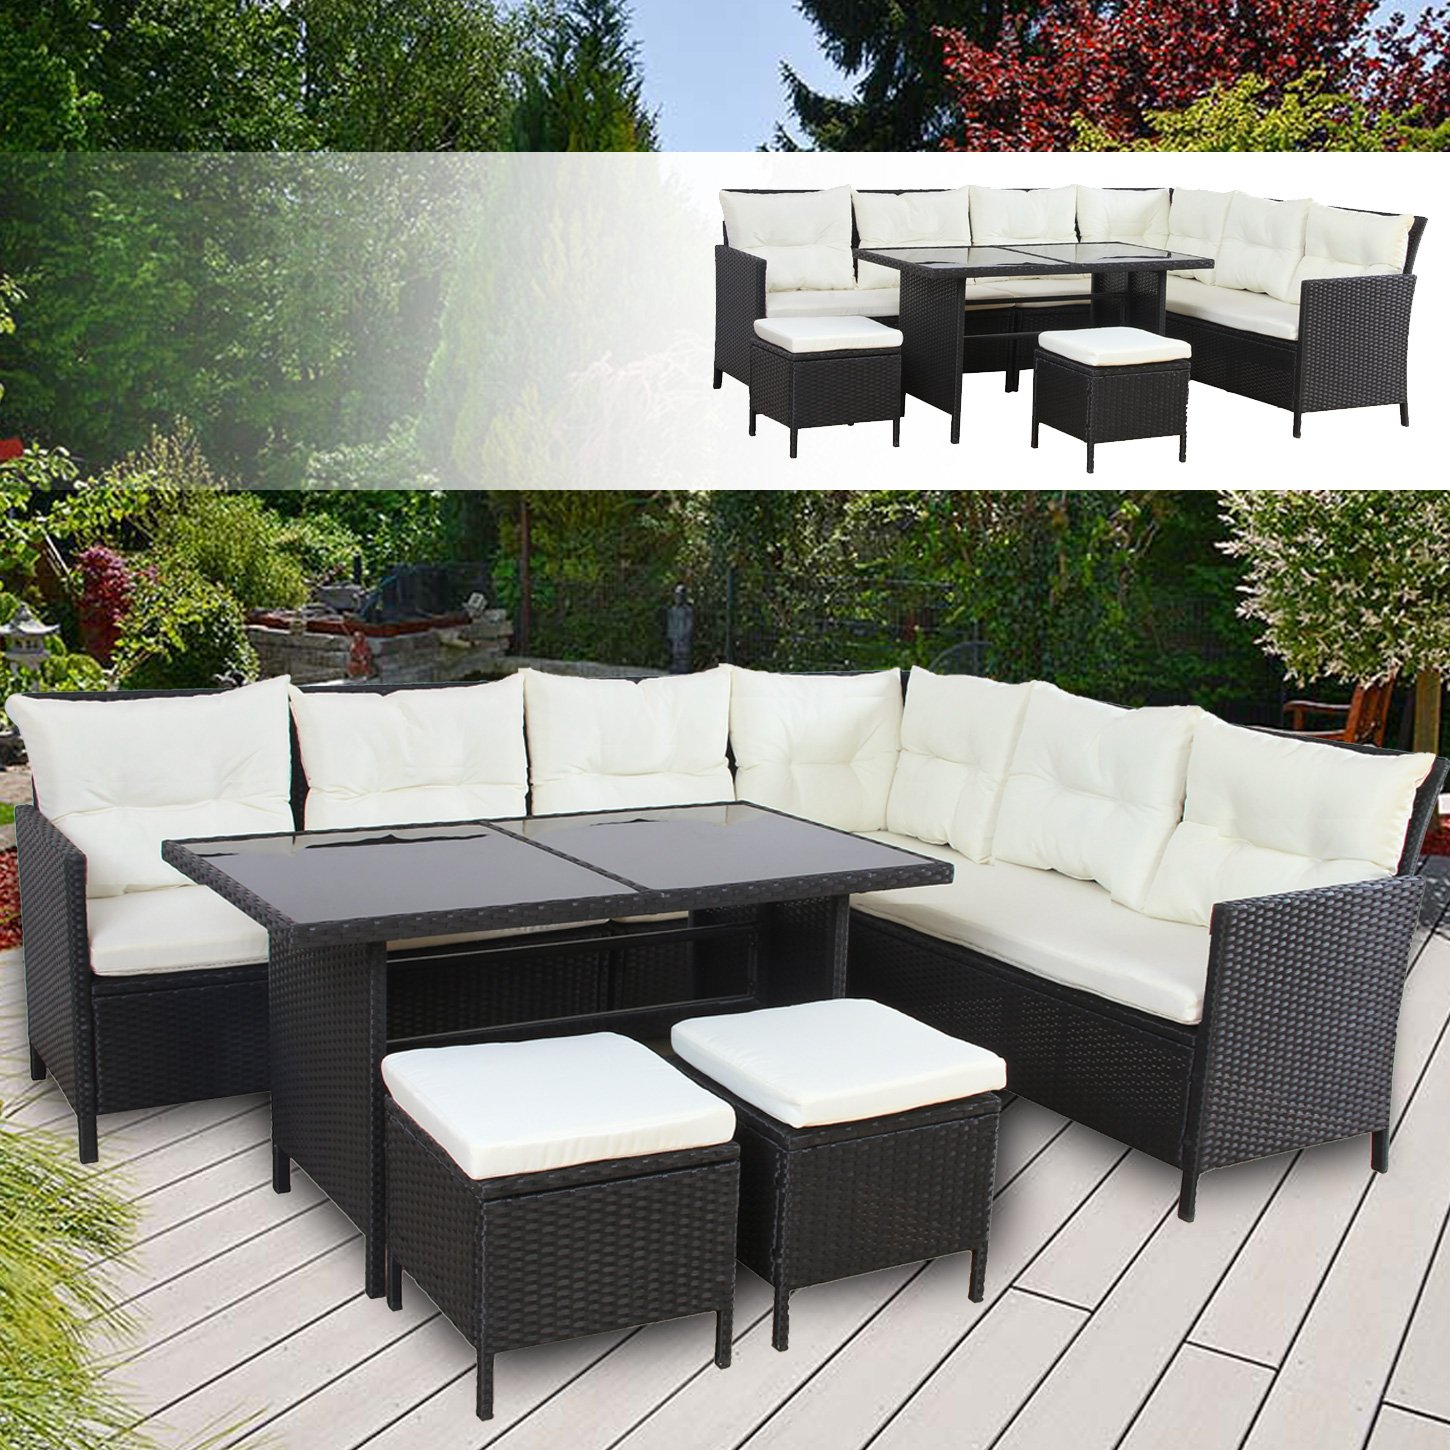 boston poly rattan gartenm bel schwarz gartenset lounge sitzgruppe gartengarnitur g nstig online. Black Bedroom Furniture Sets. Home Design Ideas